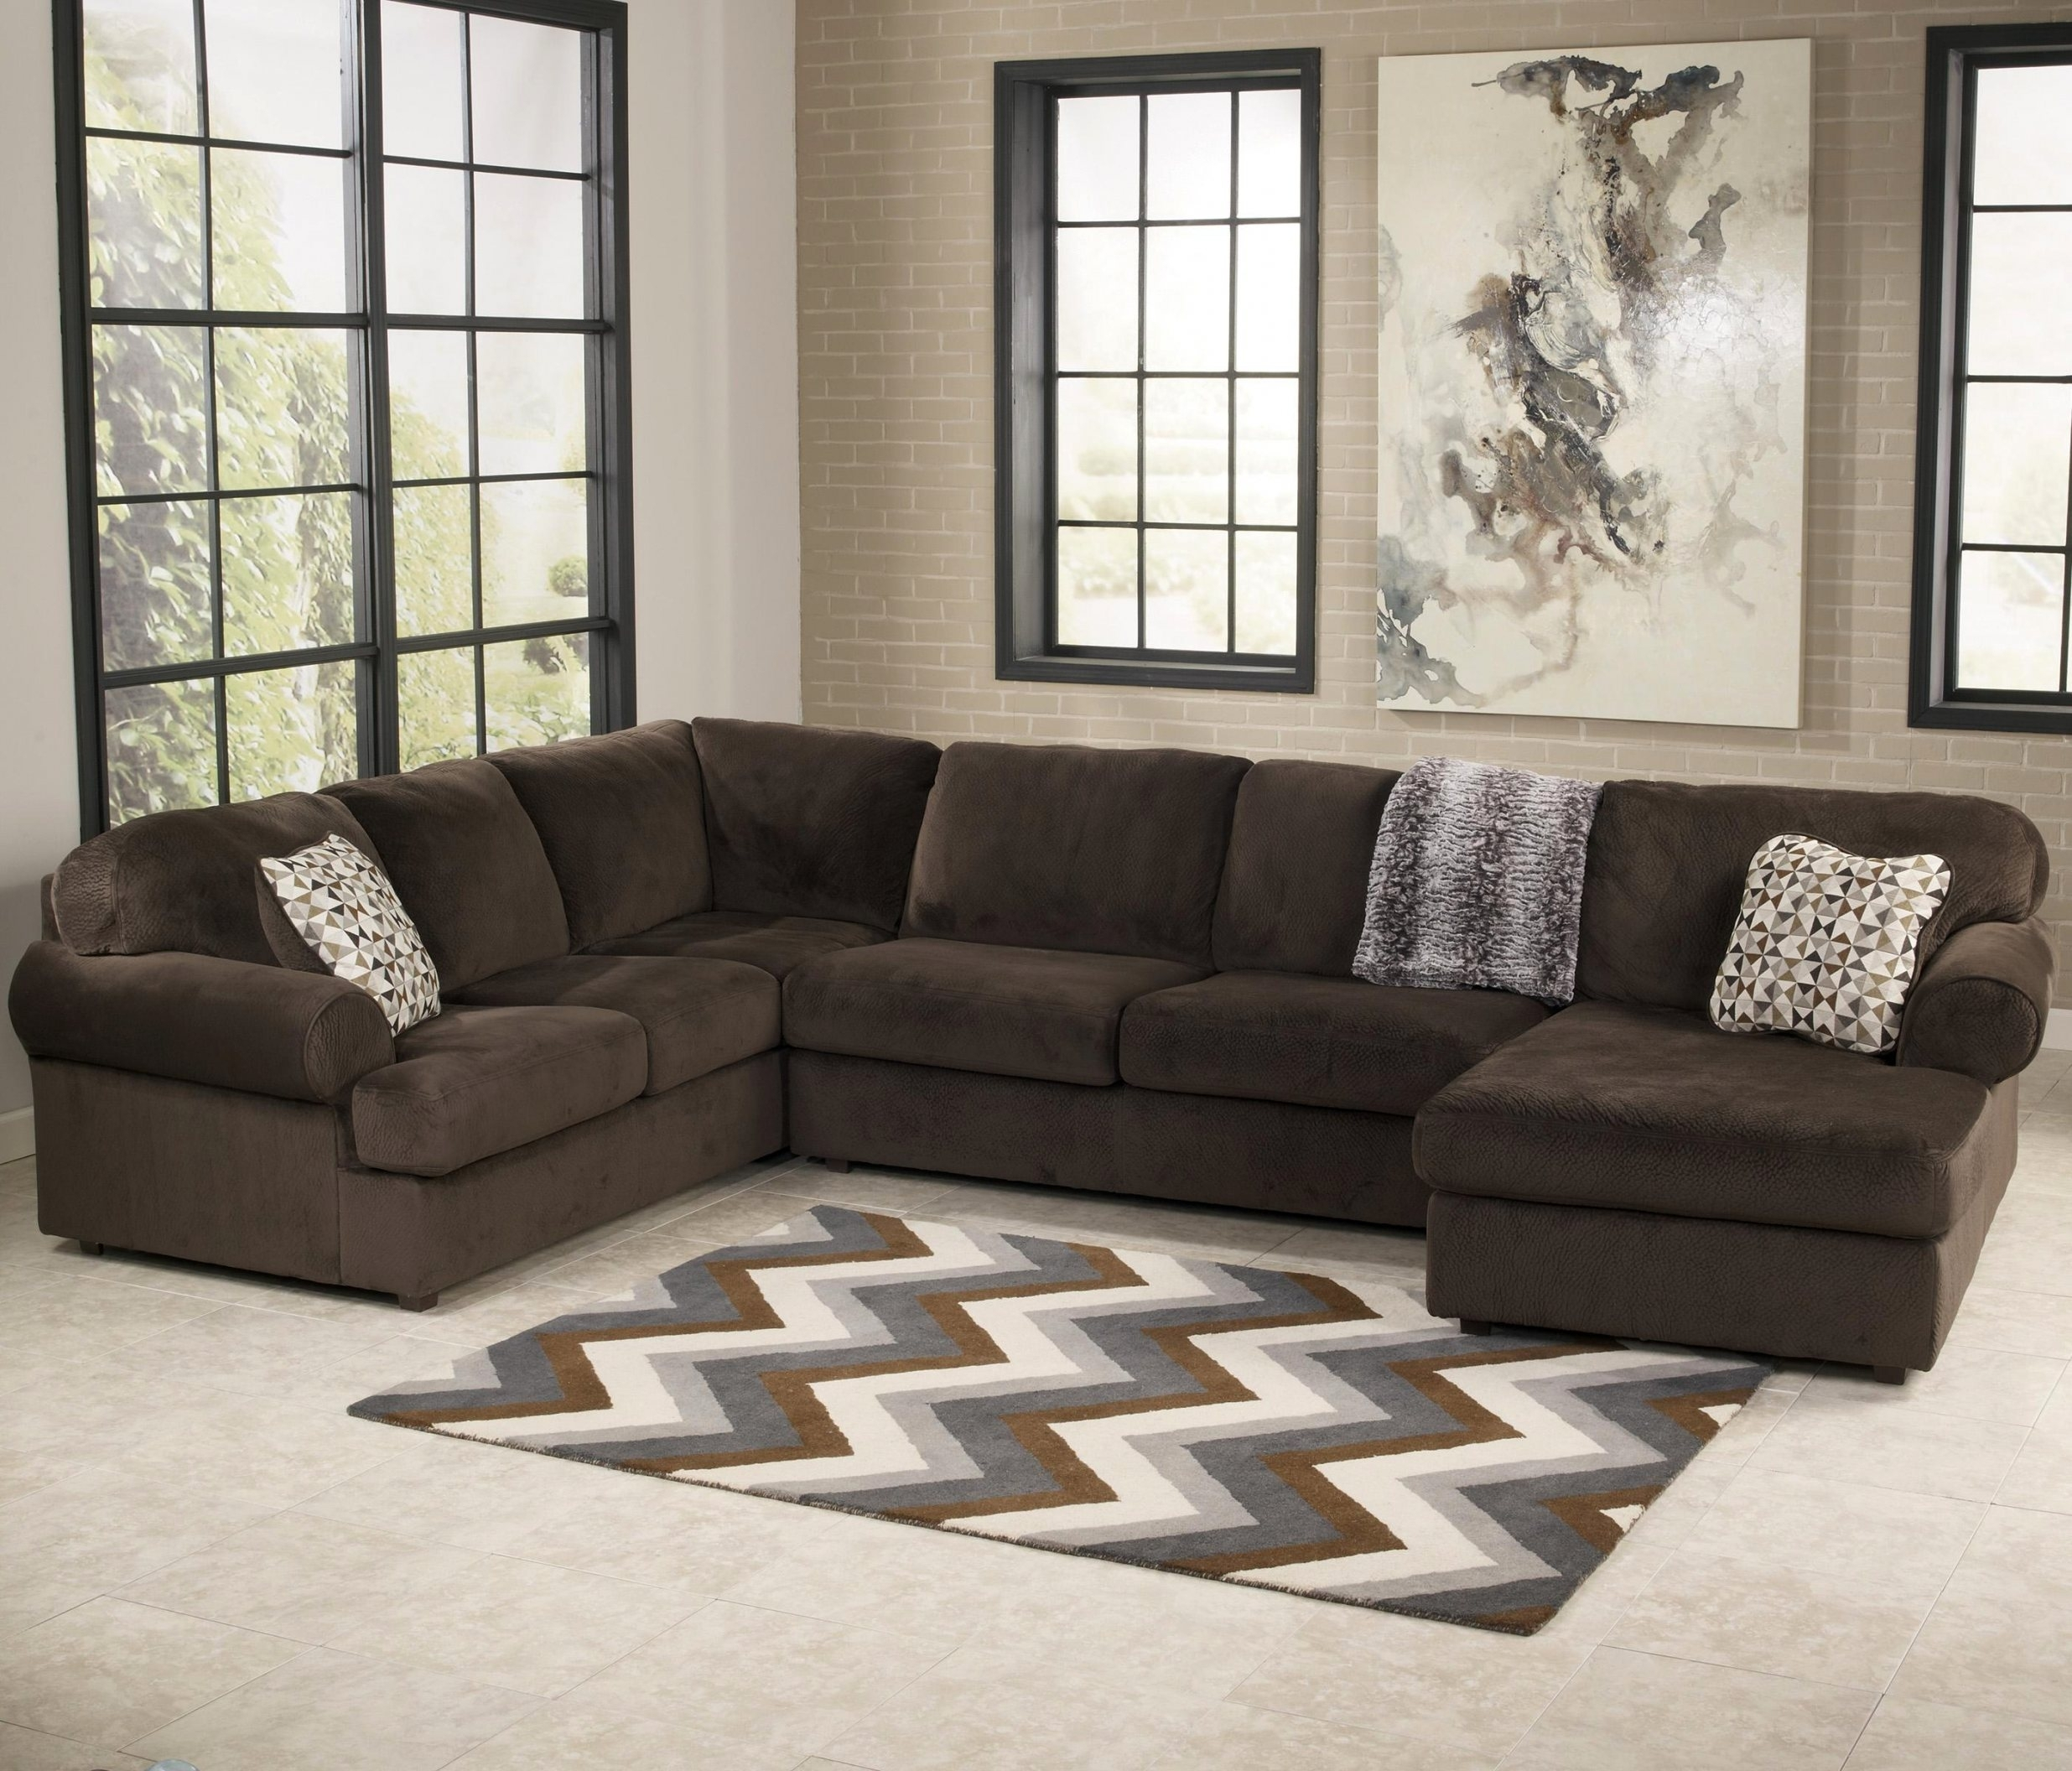 Ashley Furniture Green Bay Wi | Forever Sunset In Green Bay Wi Sectional Sofas (View 2 of 10)